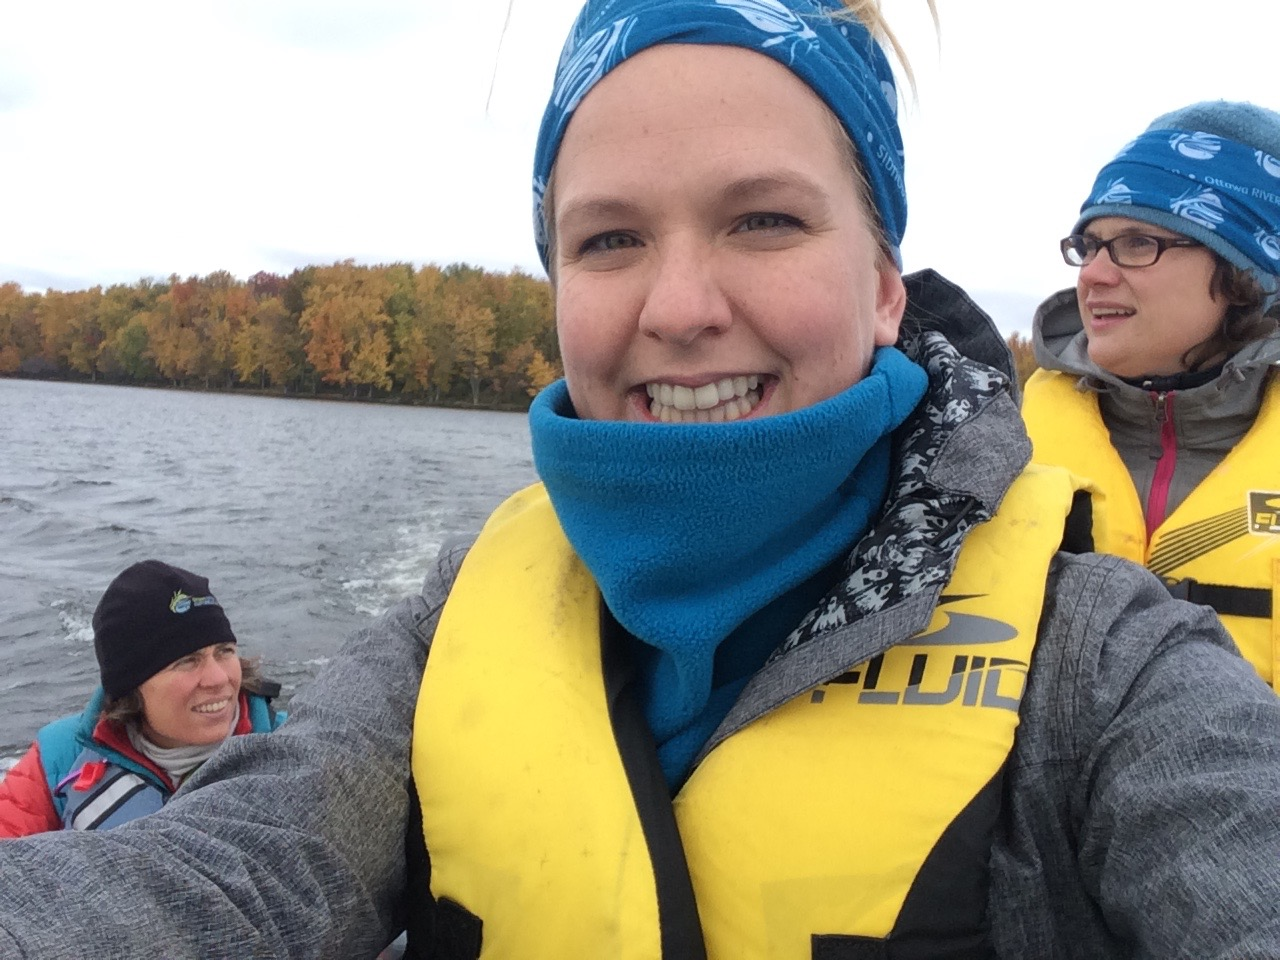 Water Rangers' creator and Executive Director, Kat Kavanagh with Ottawa Riverkeeper's Meredith Brown (left) and Meaghan Murphy. (Photo by Kat Kavanagh)